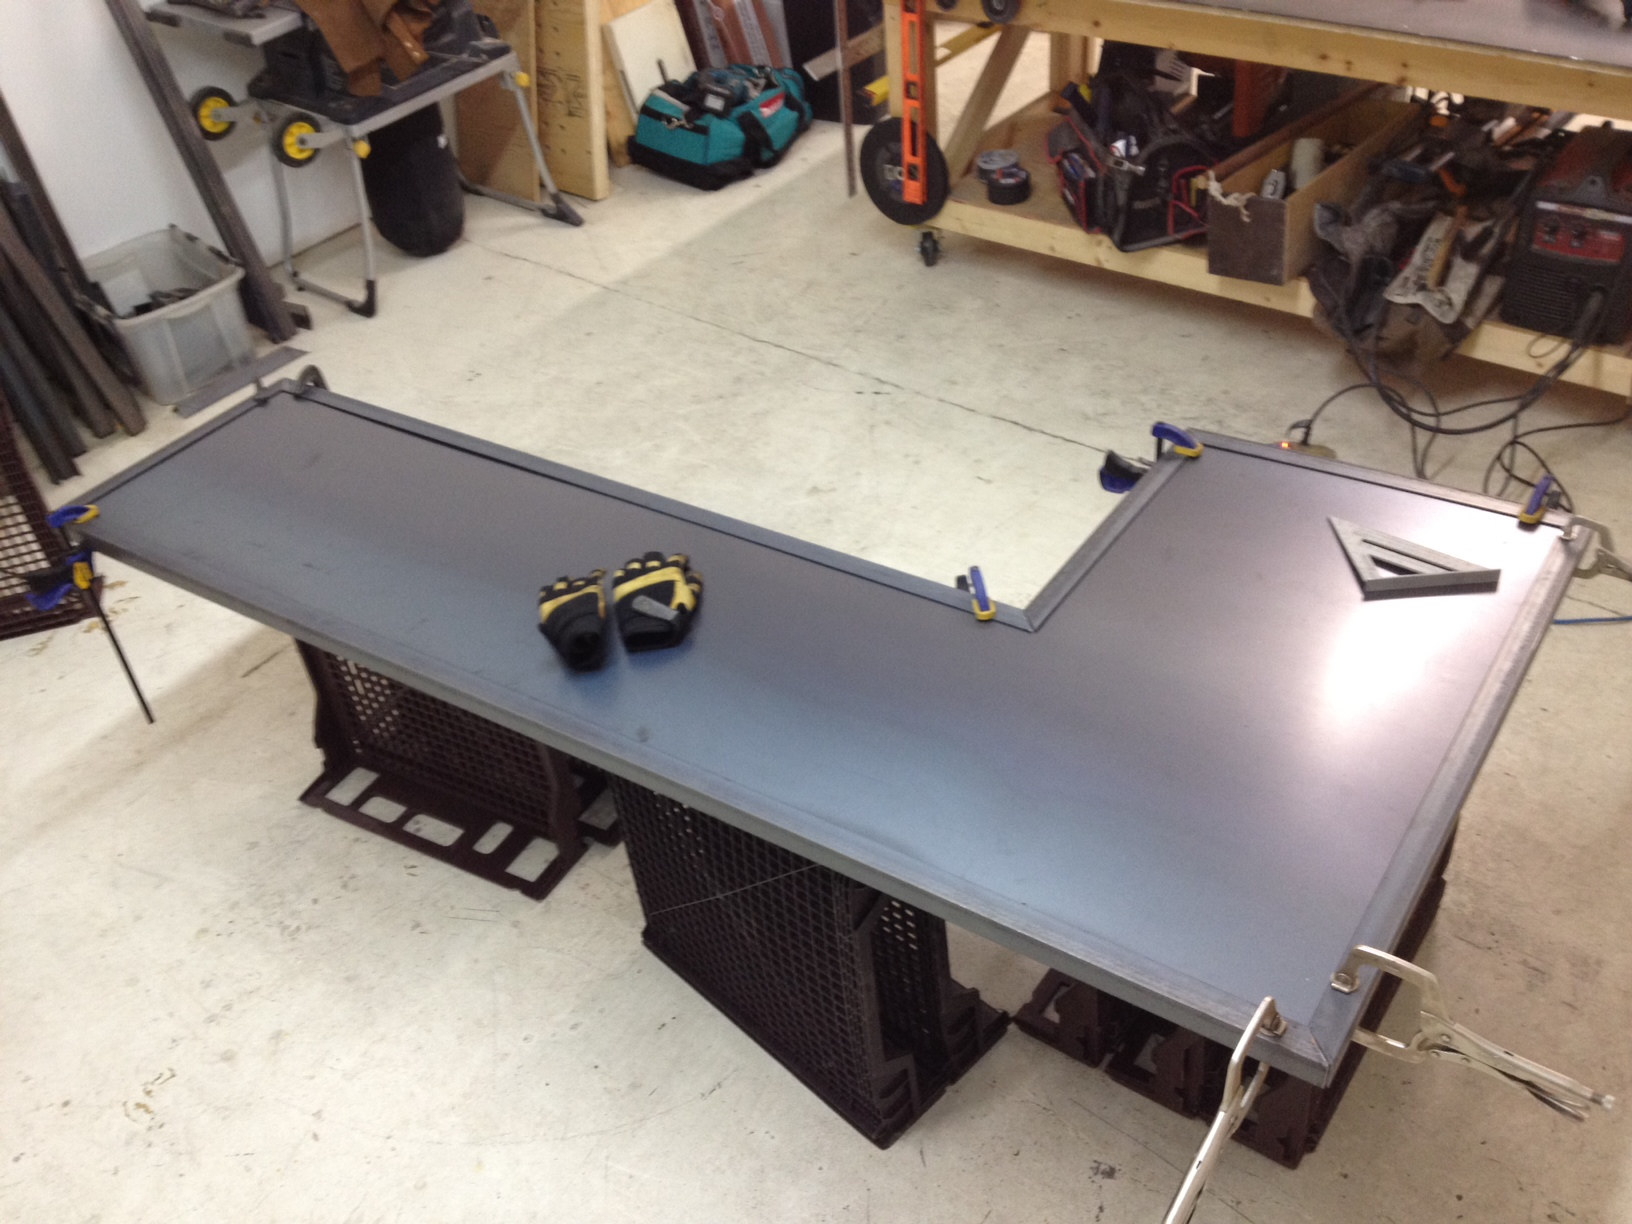 Countertop Shop : bar countertop for Bike Sauce. It?s a local volunteer run bike shop ...